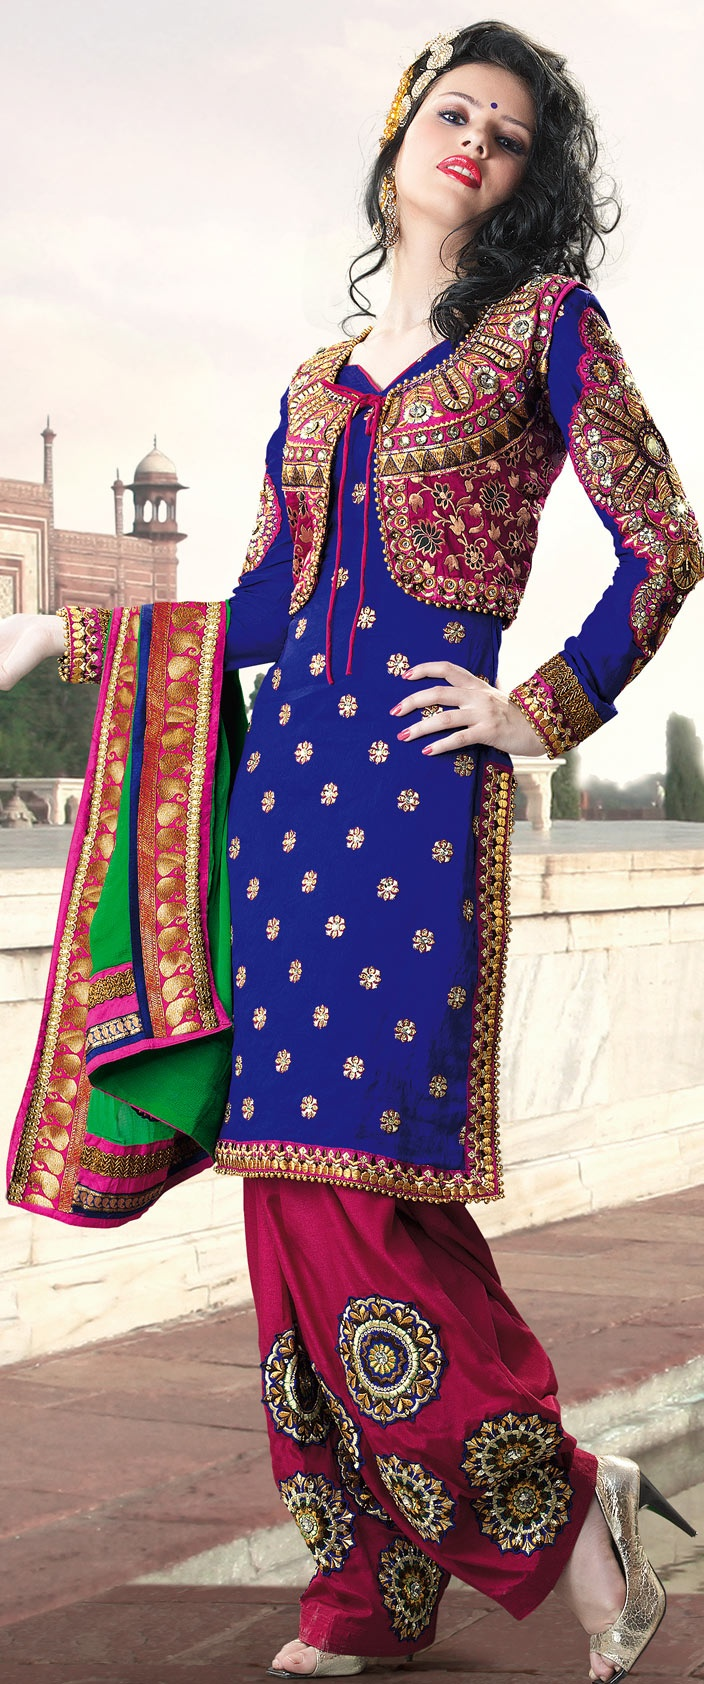 #Deep #Blue Designer Semi #Patiala #Suit for Punjabi